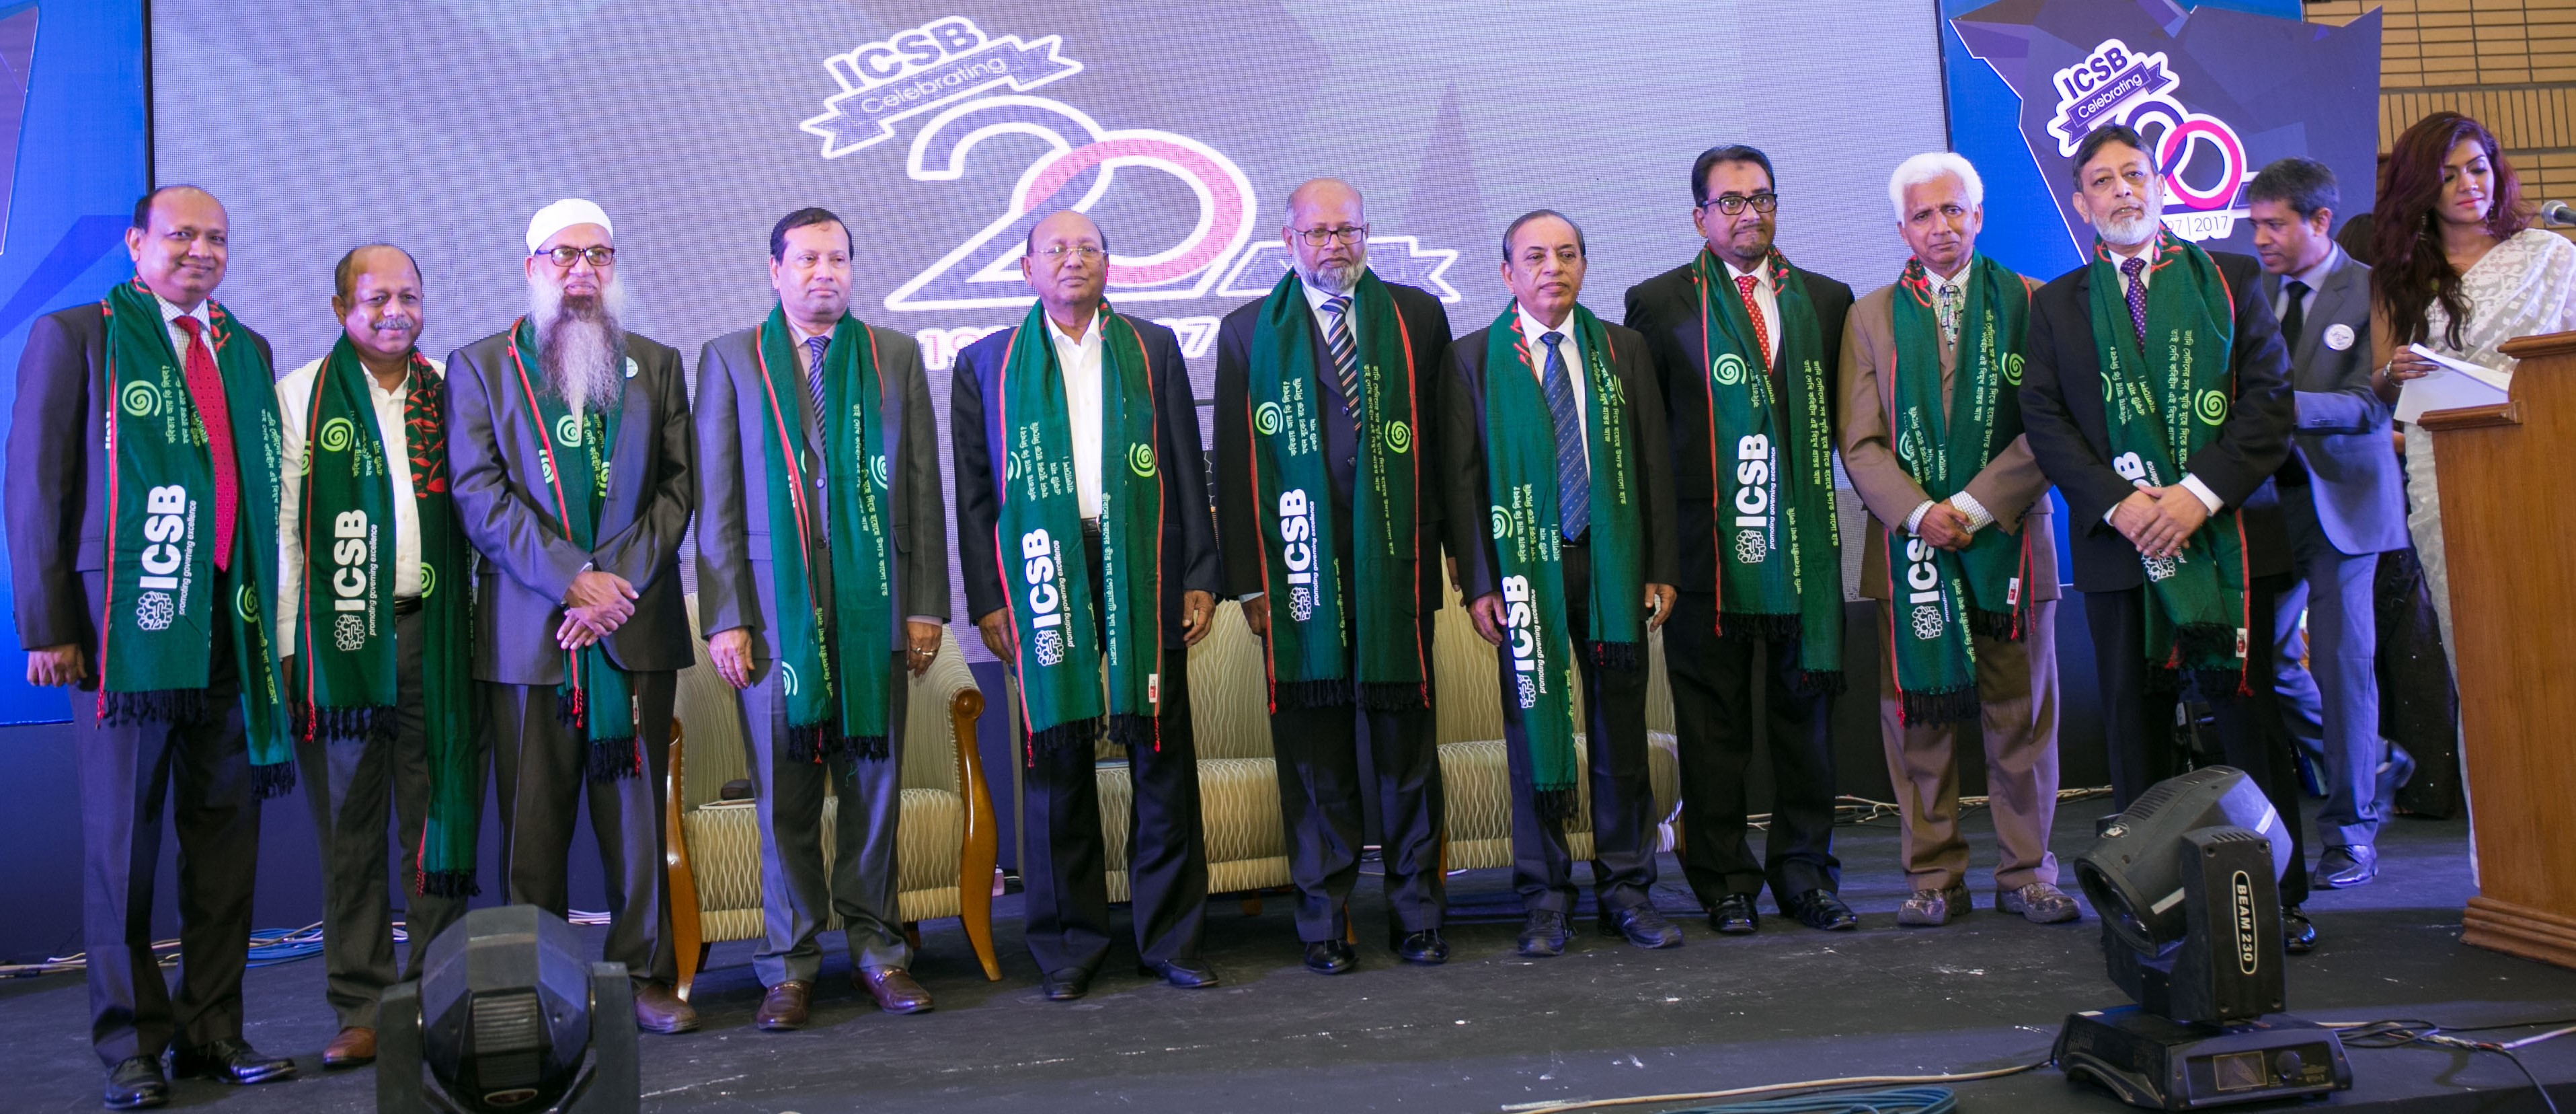 Reformation of Companies Act 1994; 20th Anniversary Celebration of ICSB